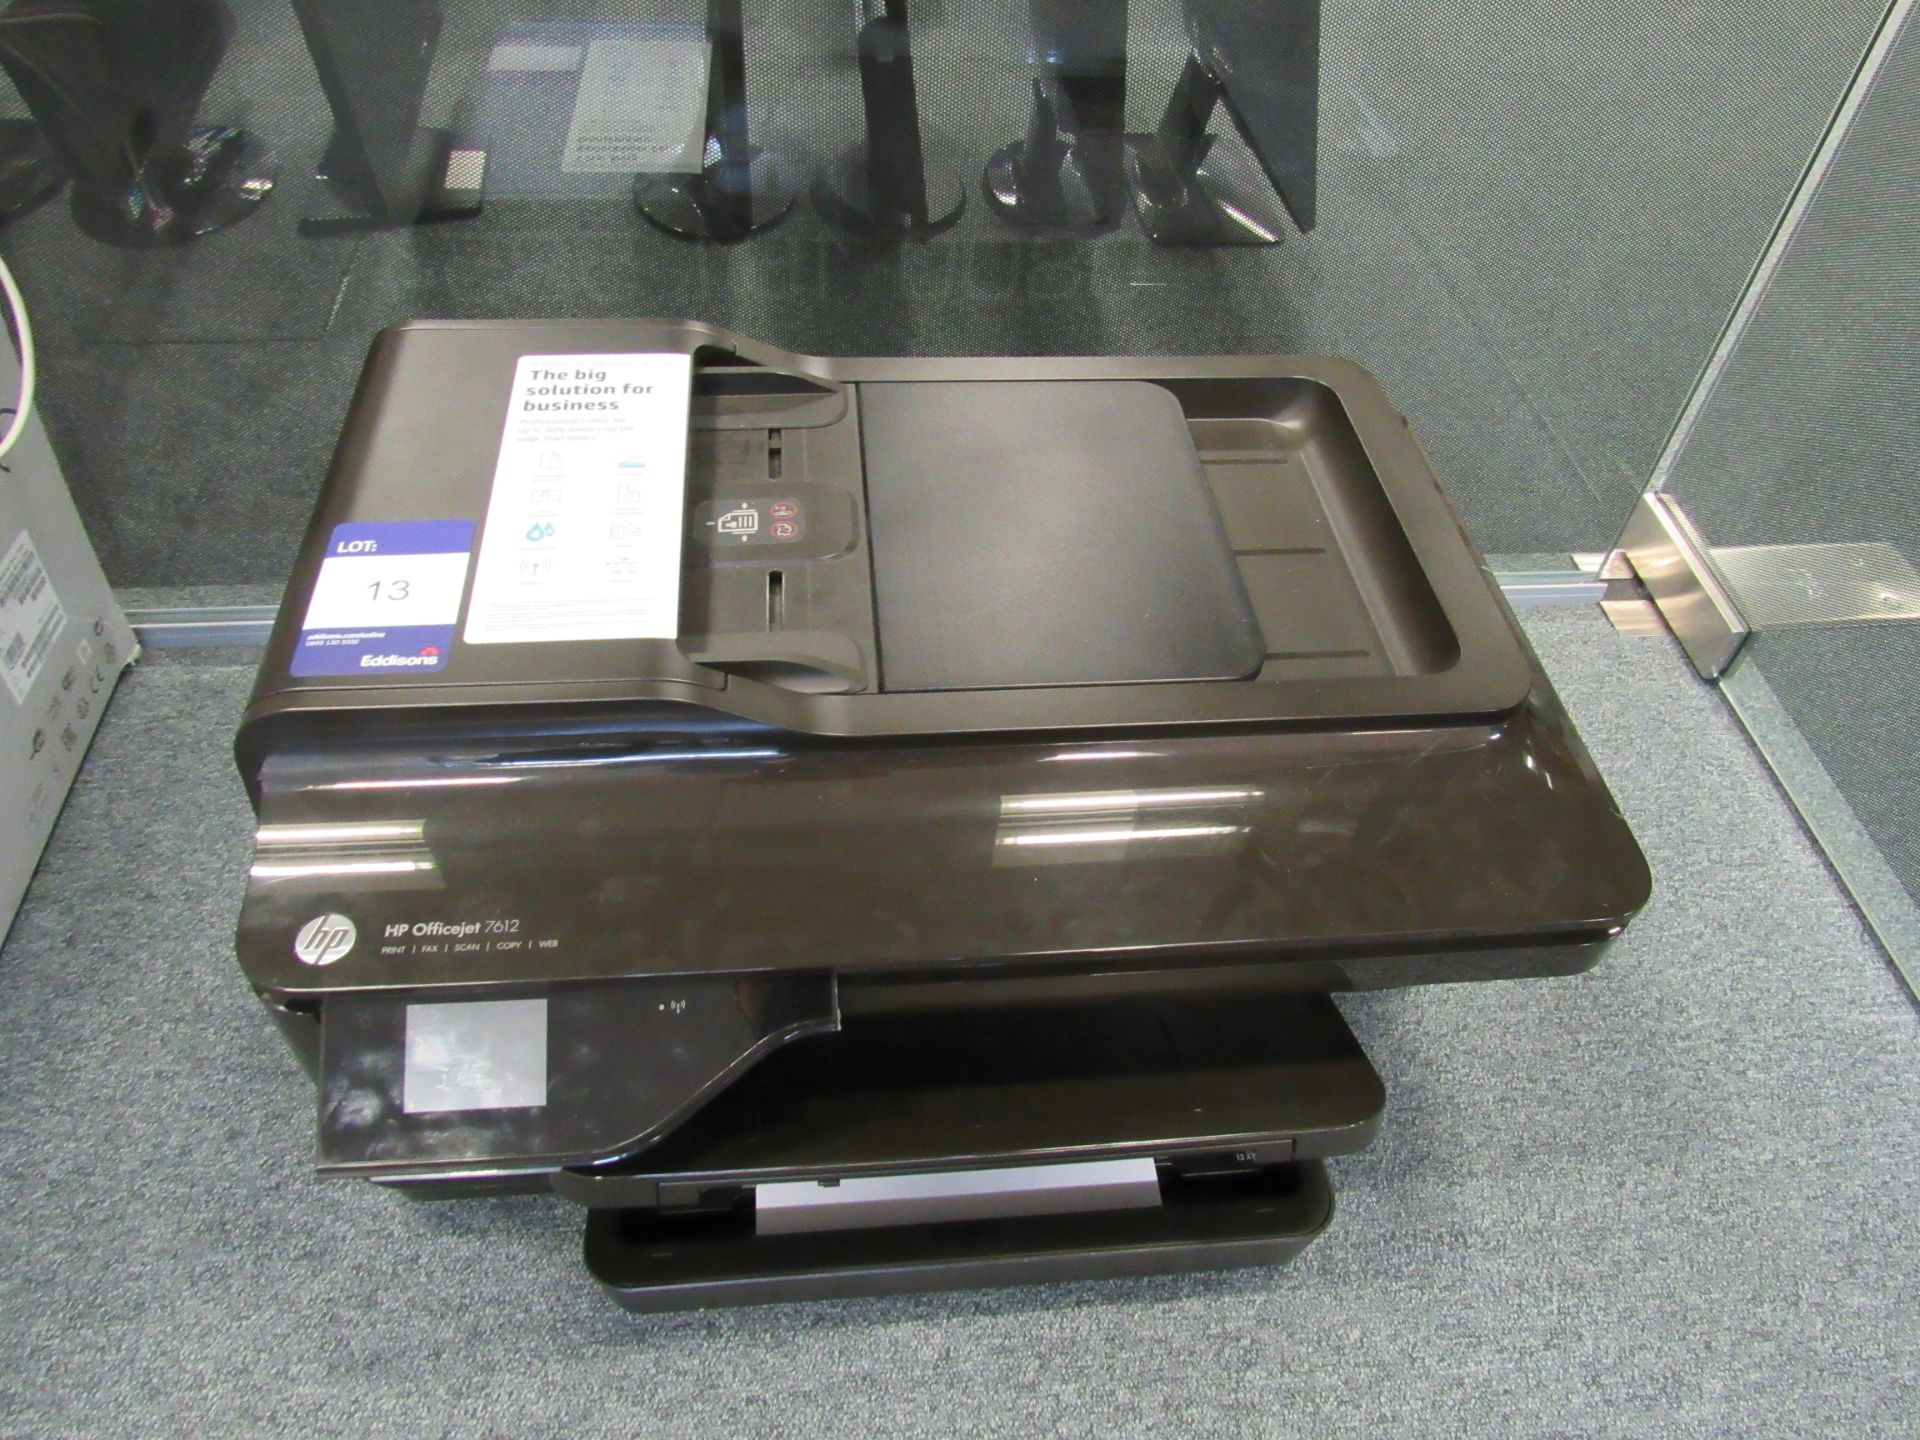 Lot 13 - HP Officejet 7612 All in One Printer/Fax/Scan/Copier